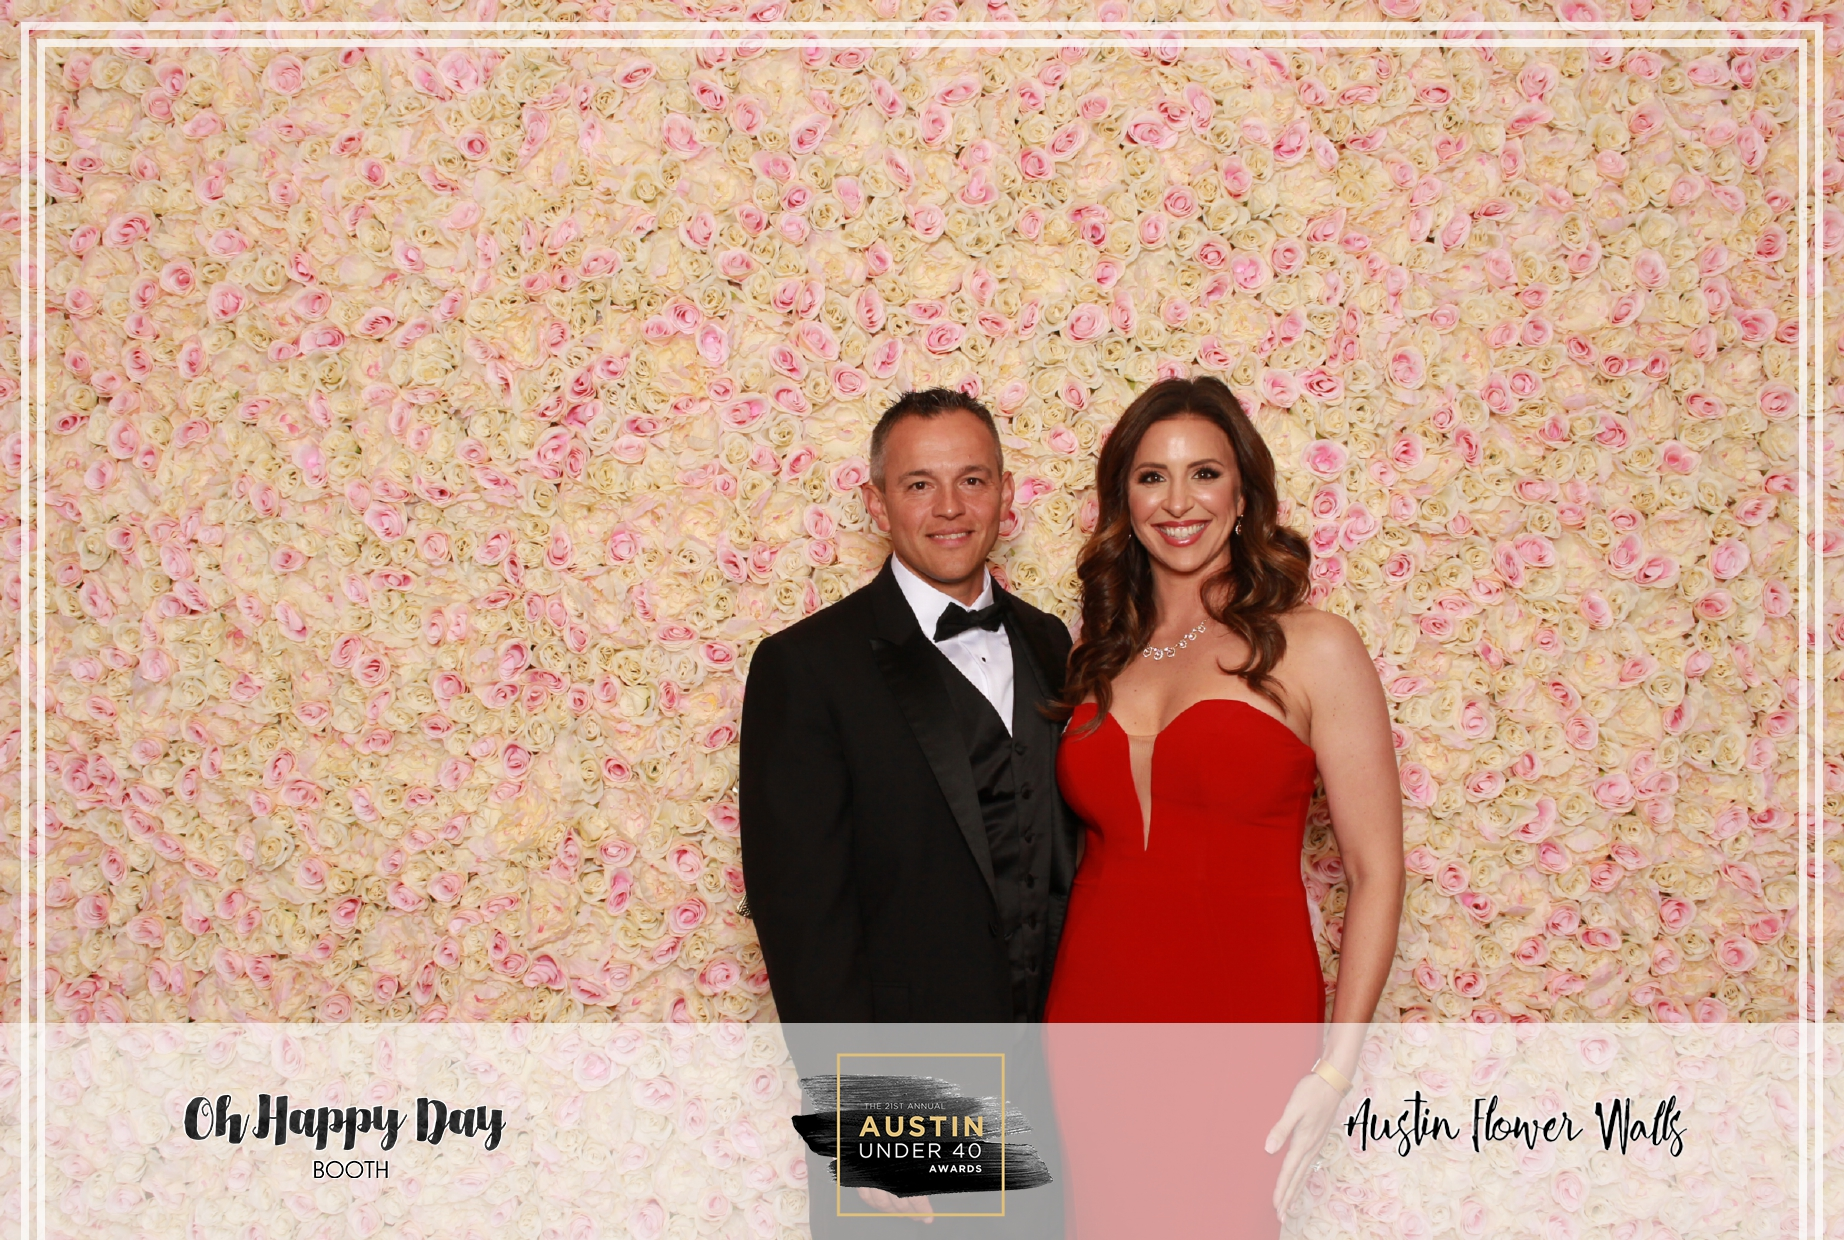 Oh Happy Day Booth - Austin Under 40-13.jpg